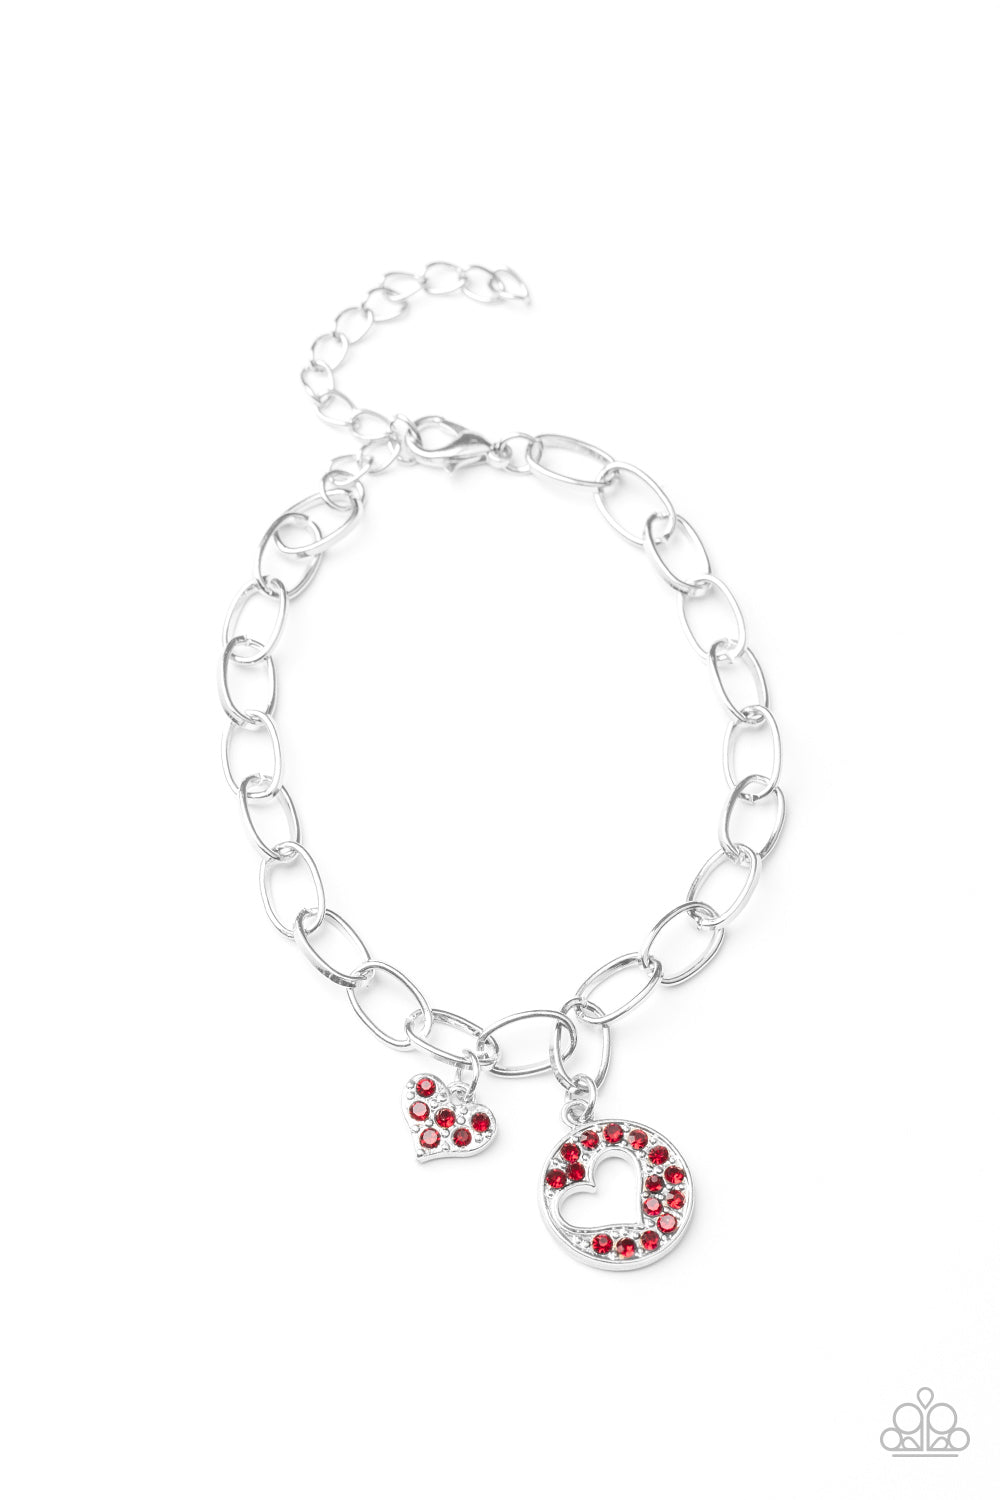 Move over Matchmaker! - Red Heart Bracelet Paparazzi Accessories New